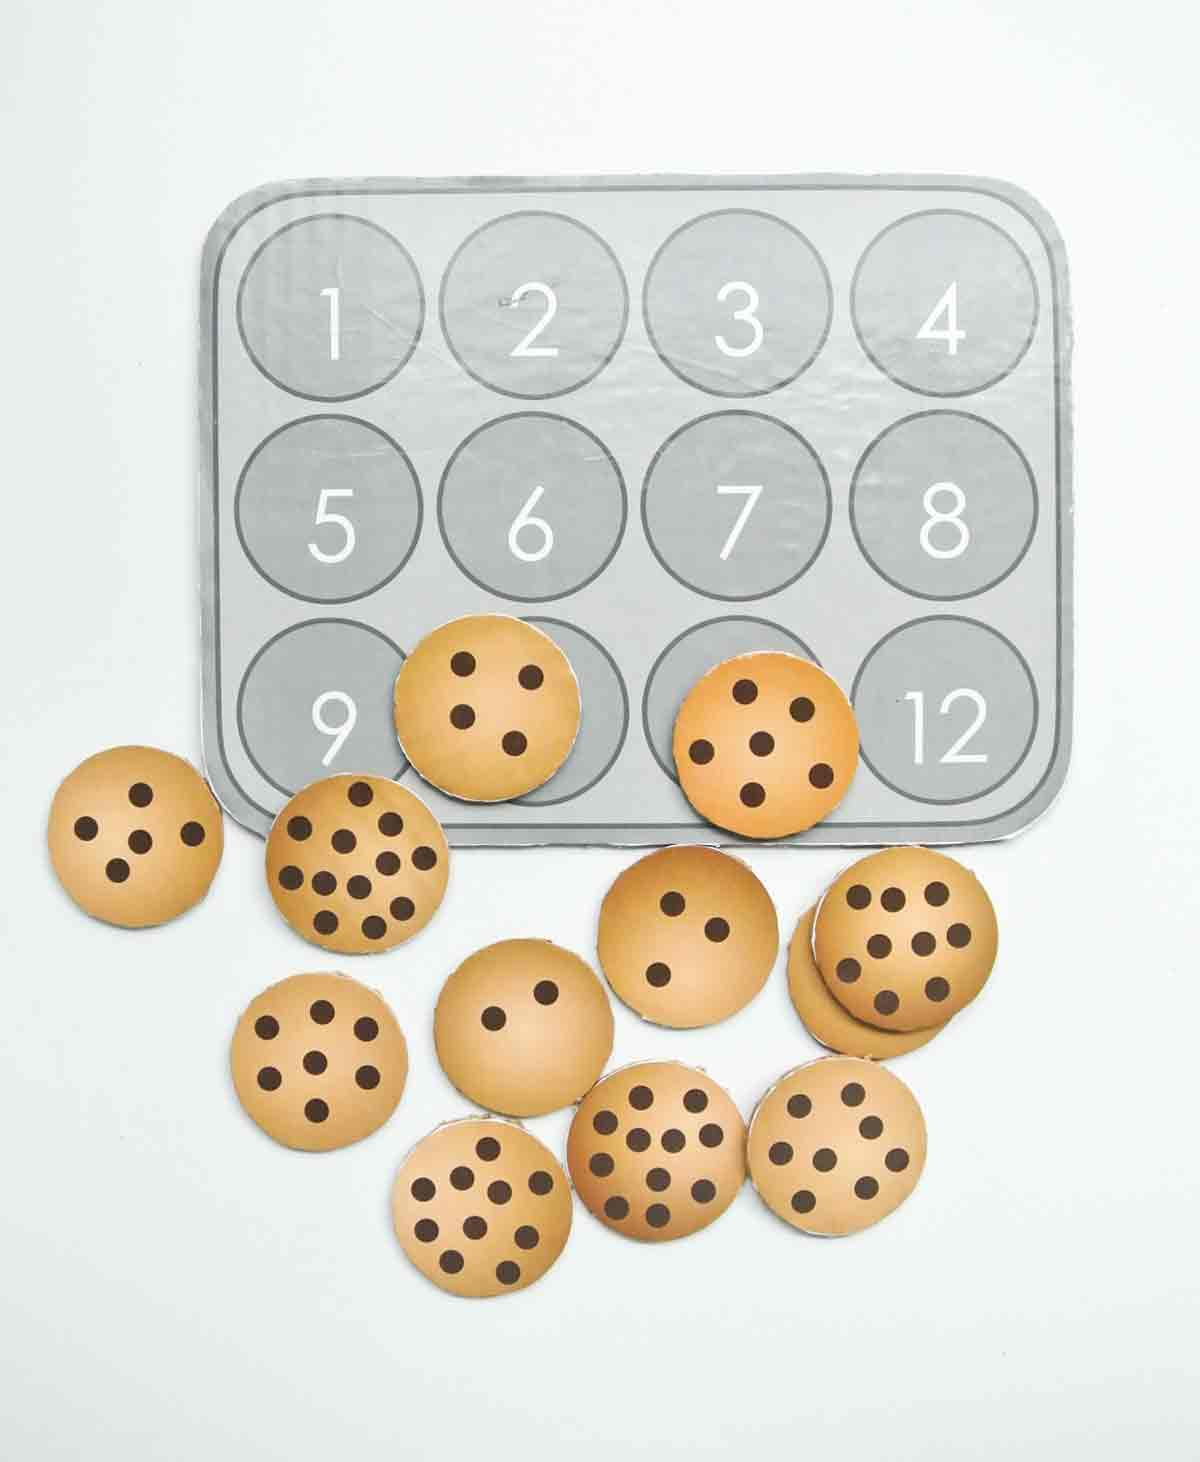 Finished Cookies with cookie sheet with numbers